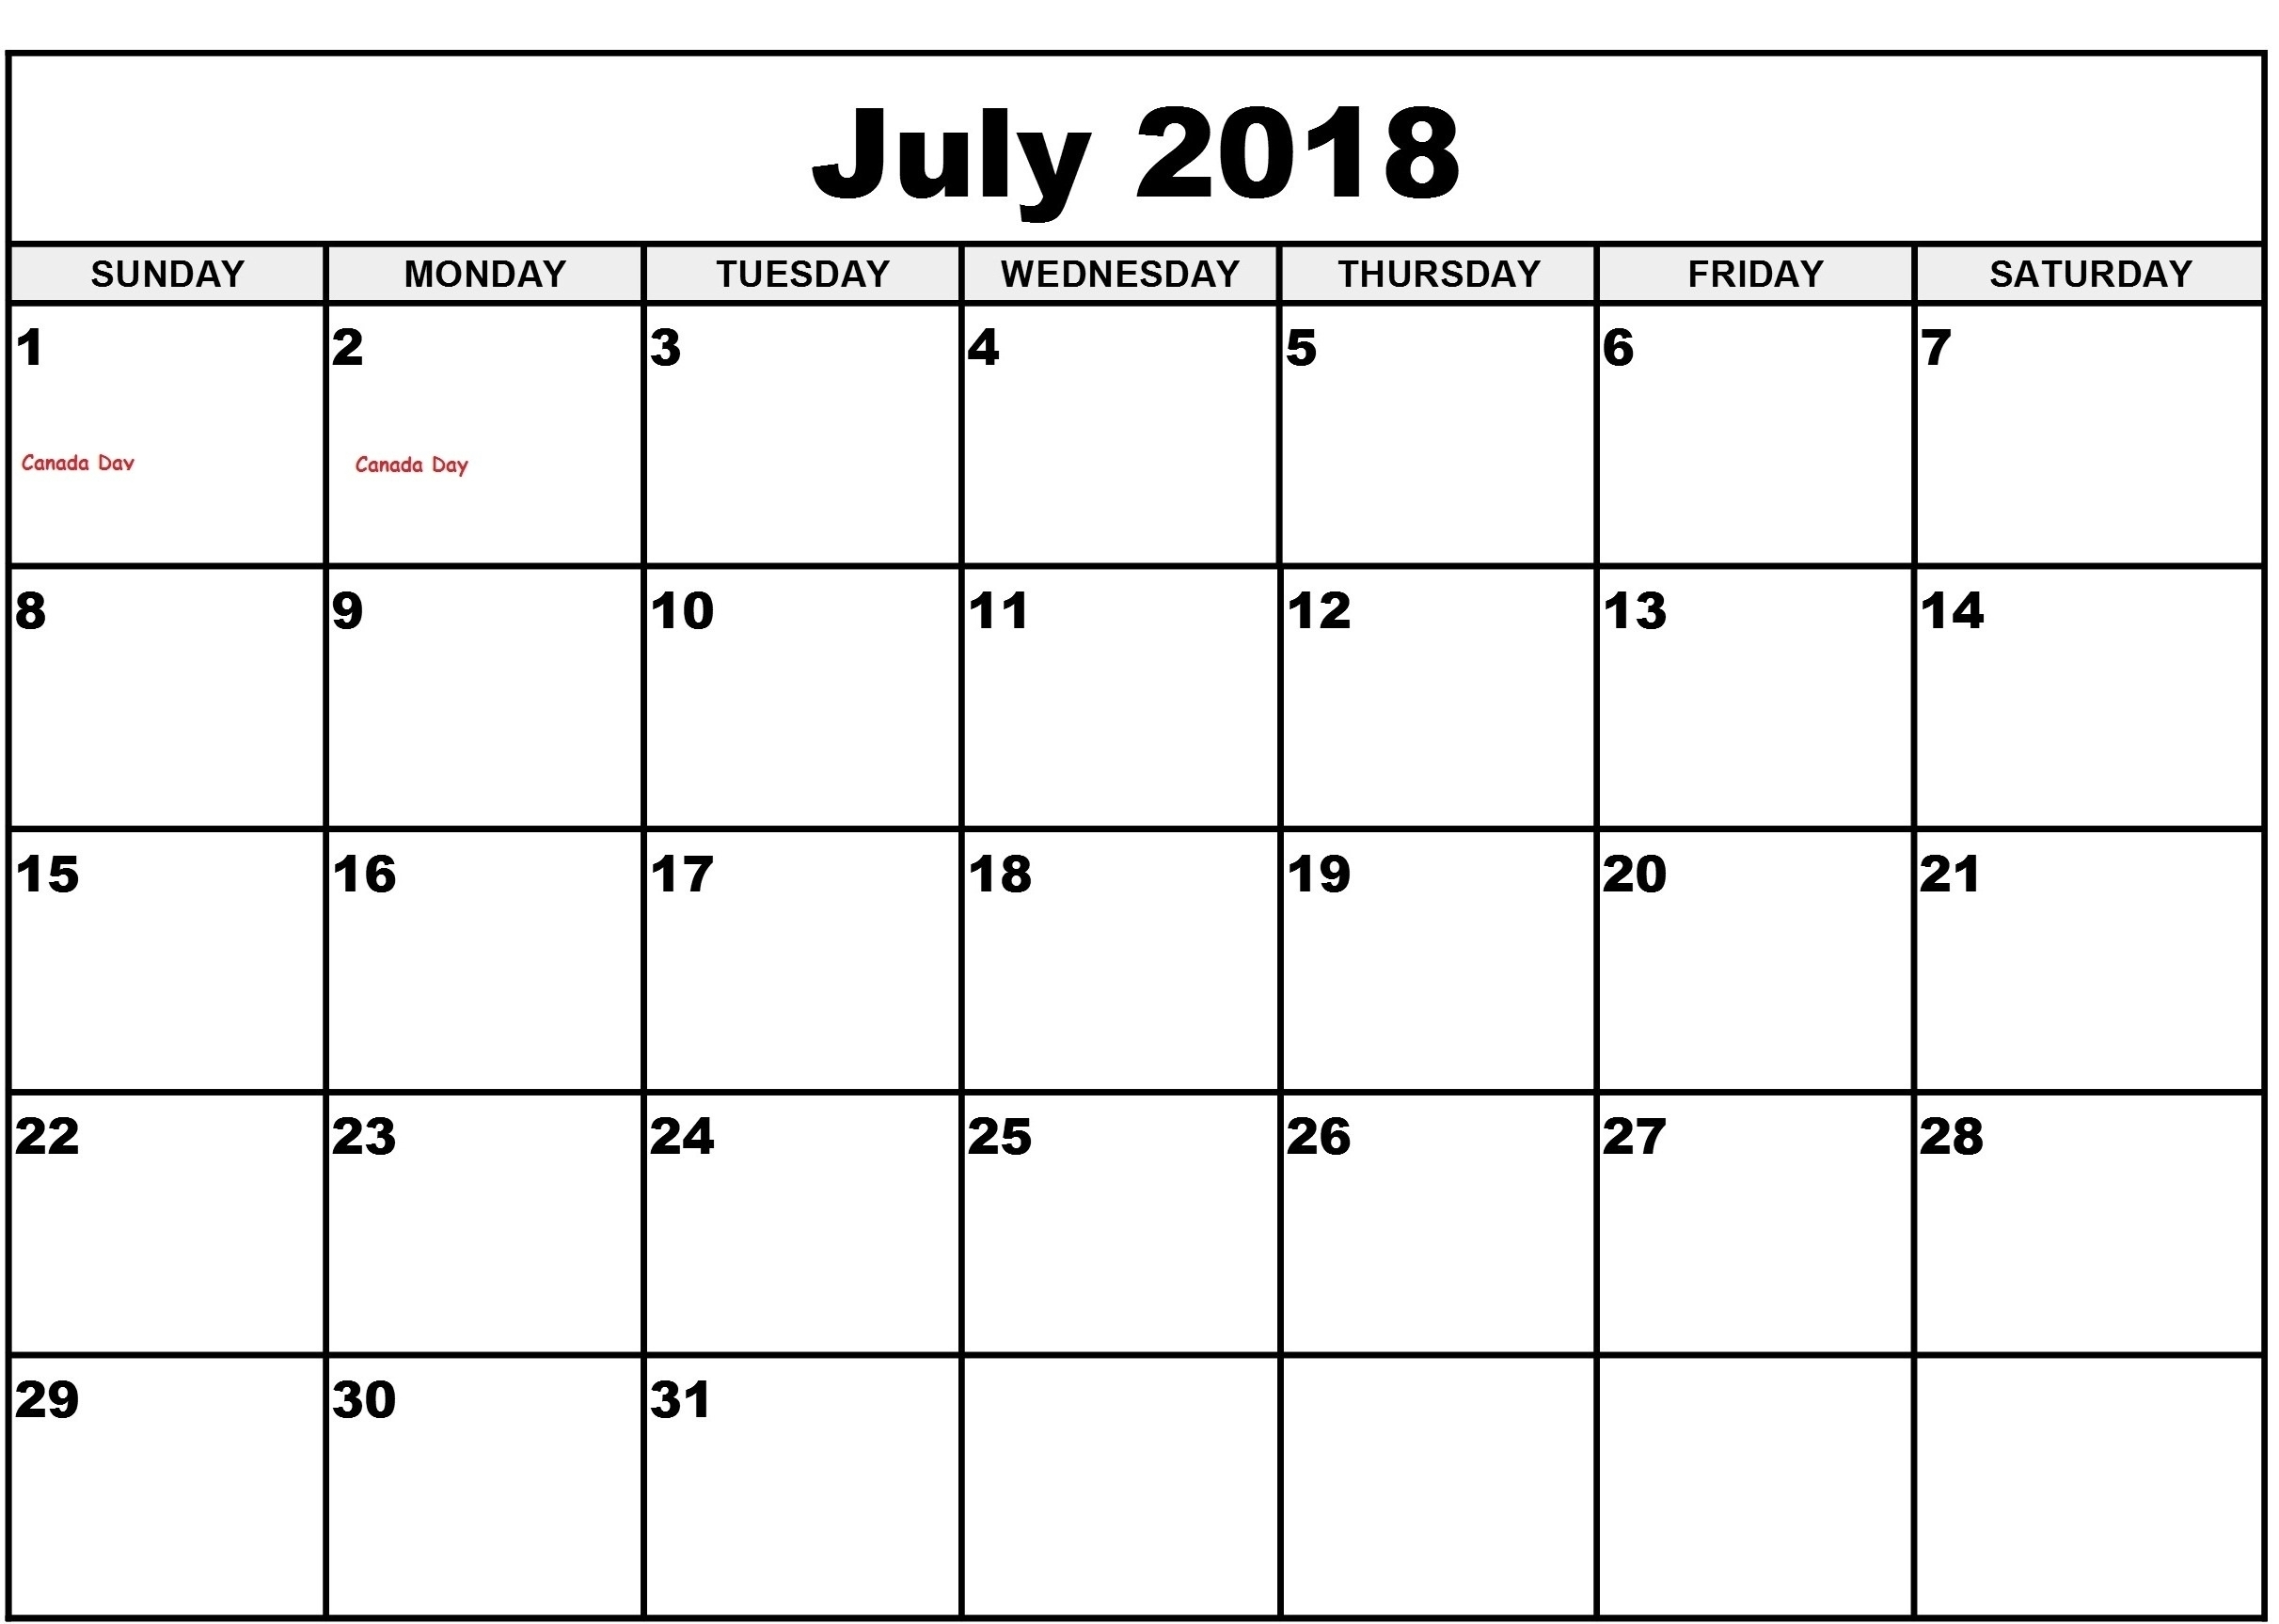 Blank July Calendar Day Slots | Template Calendar Printable inside Blank July Calendar Day Slots